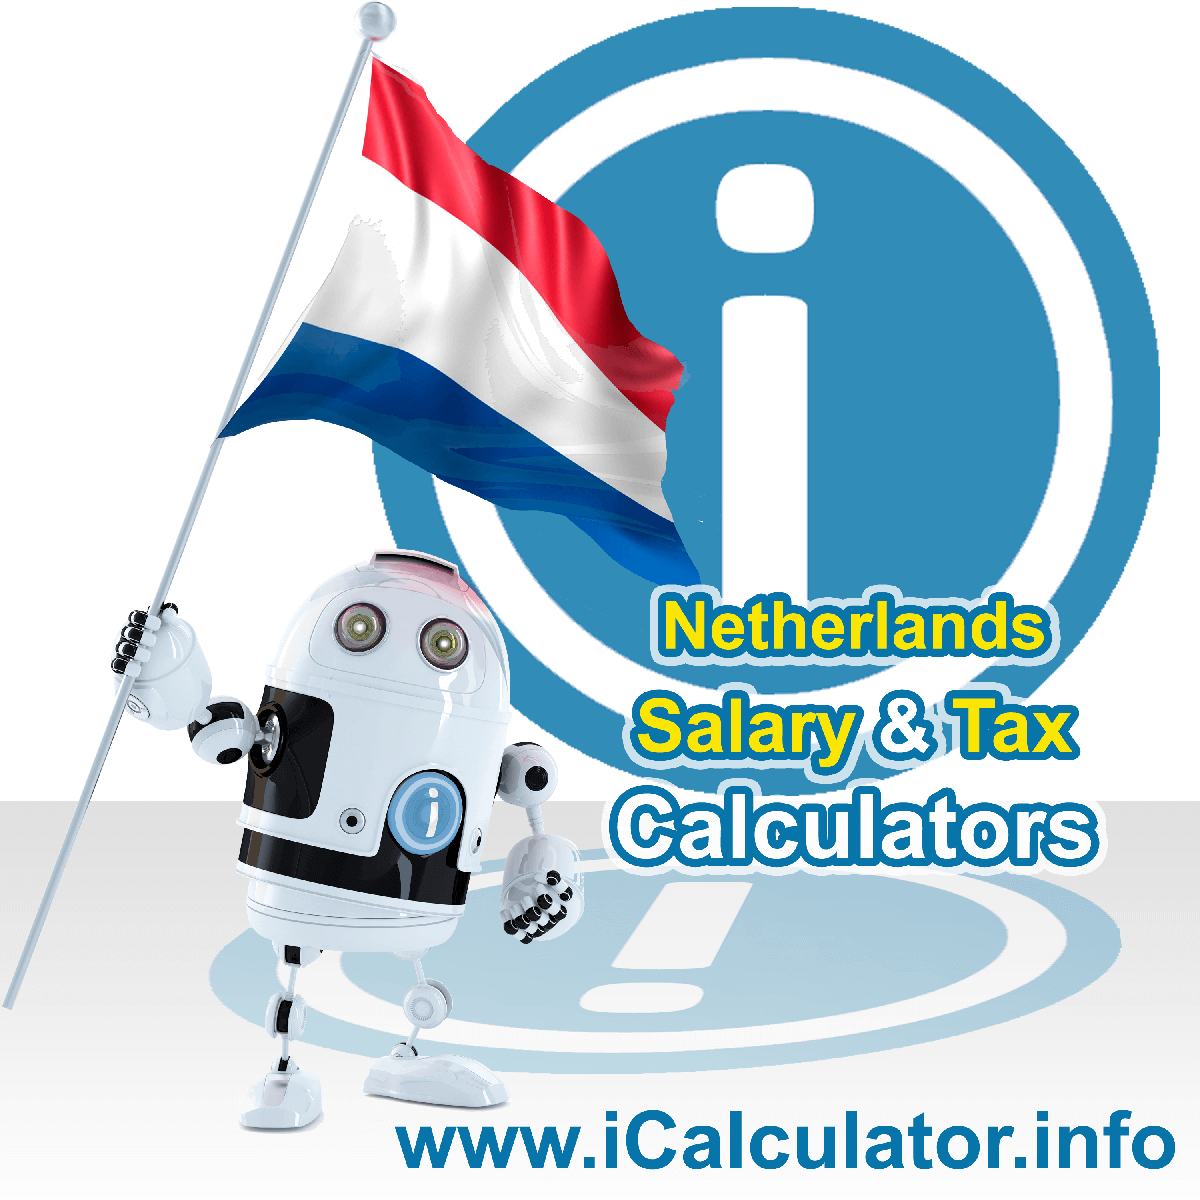 The Netherlands Wage Calculator. This image shows the Netherlands flag and information relating to the tax formula for the Netherlands Tax Calculator